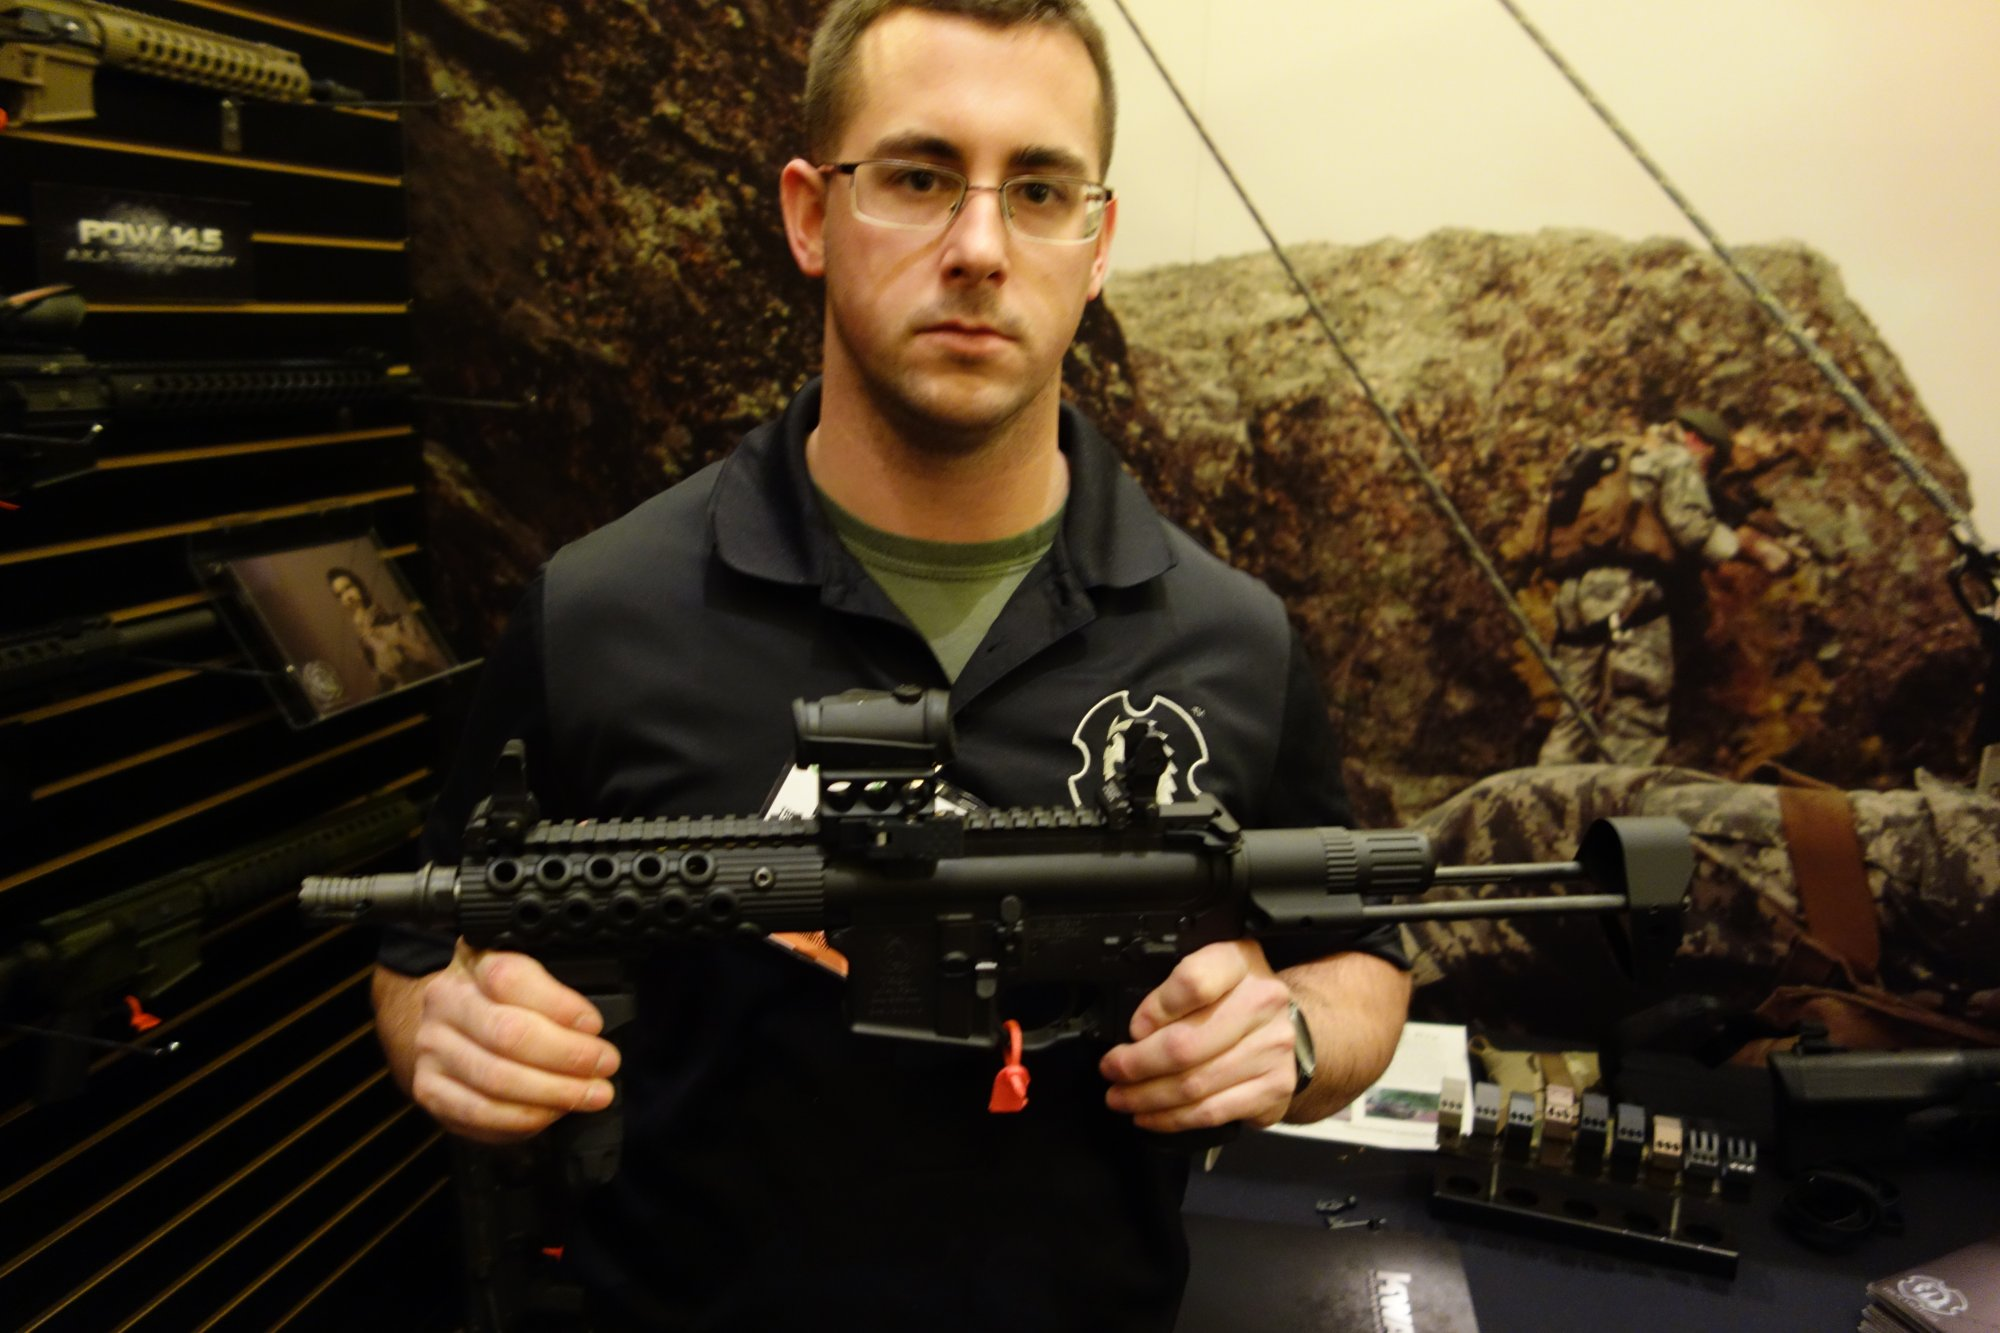 Troy Defense M7 PDW Select Fire 5.56mm 300 AAC Blackout 300BLK Tactical AR 15 SBR 14.5 Trunk Monkey Tactical AR 15 Carbine and Semi Auto Only Tactical AR 15 Carbines SHOT Show 2013 David Crane DefenseReview.com DR 3 Troy Defense M7 PDW 7 AR SBR and 14.5 Trunk Monkey 14.5 AR Carbine: 5.56mm/300 AAC Blackout (300BLK) Select Fire Tactical AR 15 SBR/Carbine Package (Video!)